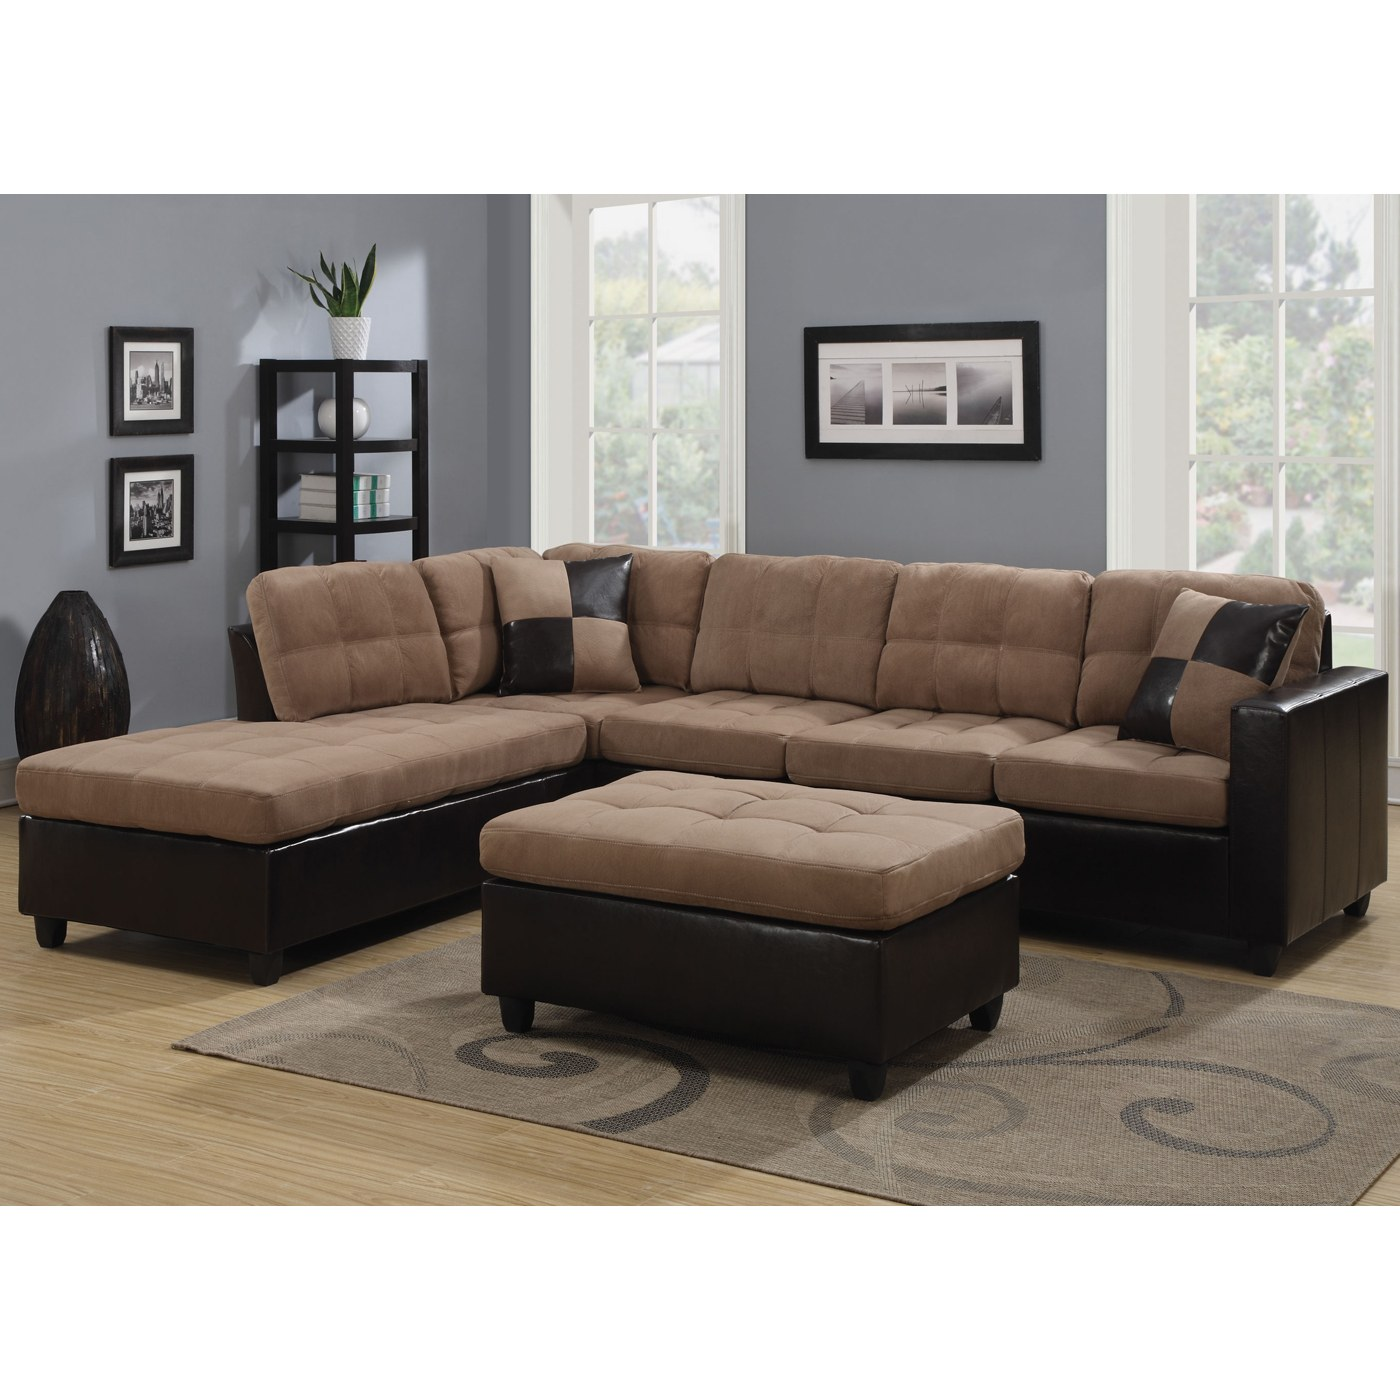 Enjoyable Mallory Microfiber Sectional With Tan Microfiber Dark Brown Leather Like Vinyl Upholstery By Coaster Fine Furniture Uwap Interior Chair Design Uwaporg